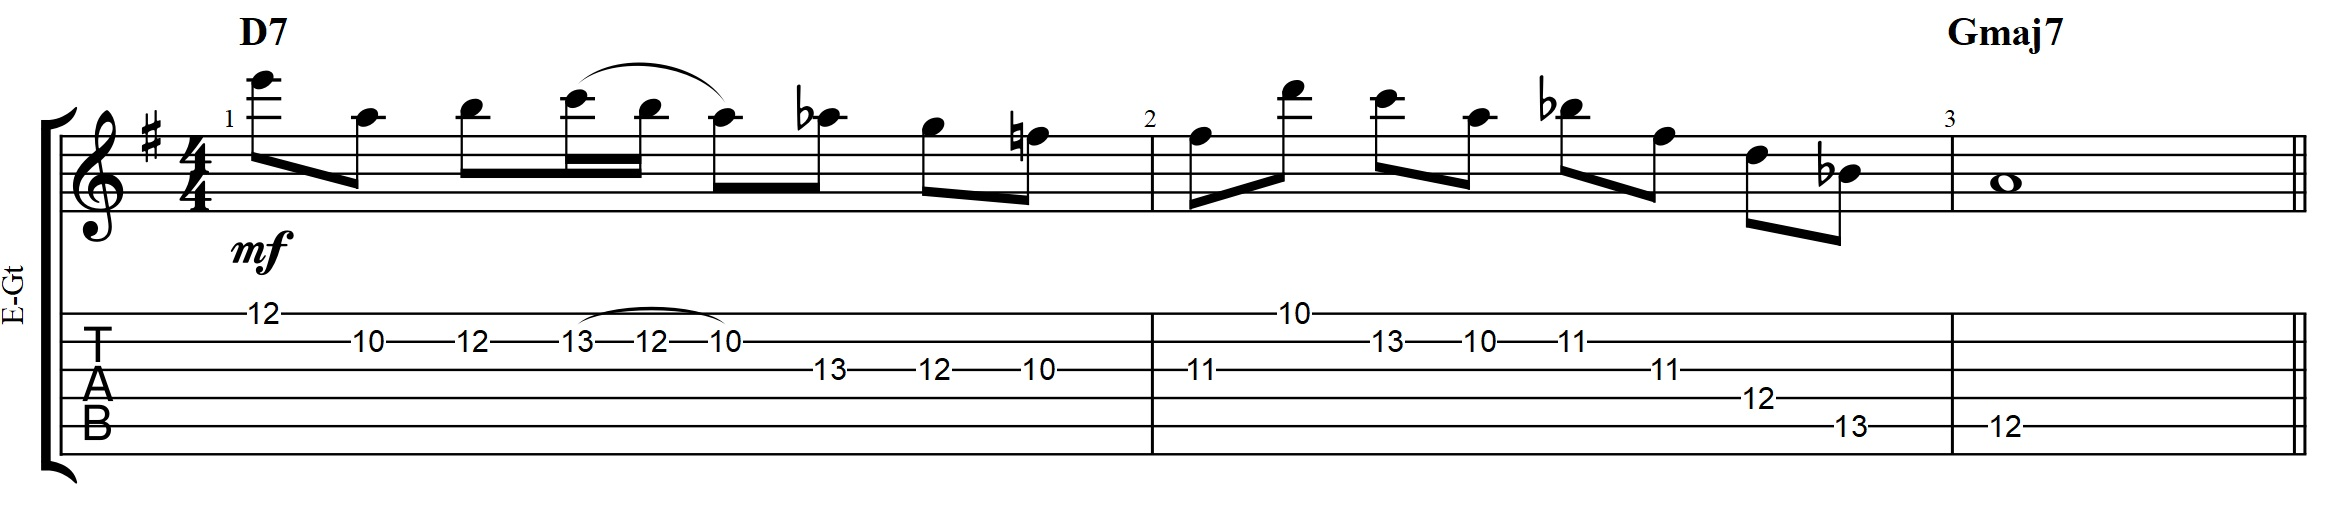 Chord archives jens larsen to practice playing the 16th note trills with legato you can take this exercise through a position of 3 notes per string major scale buycottarizona Image collections